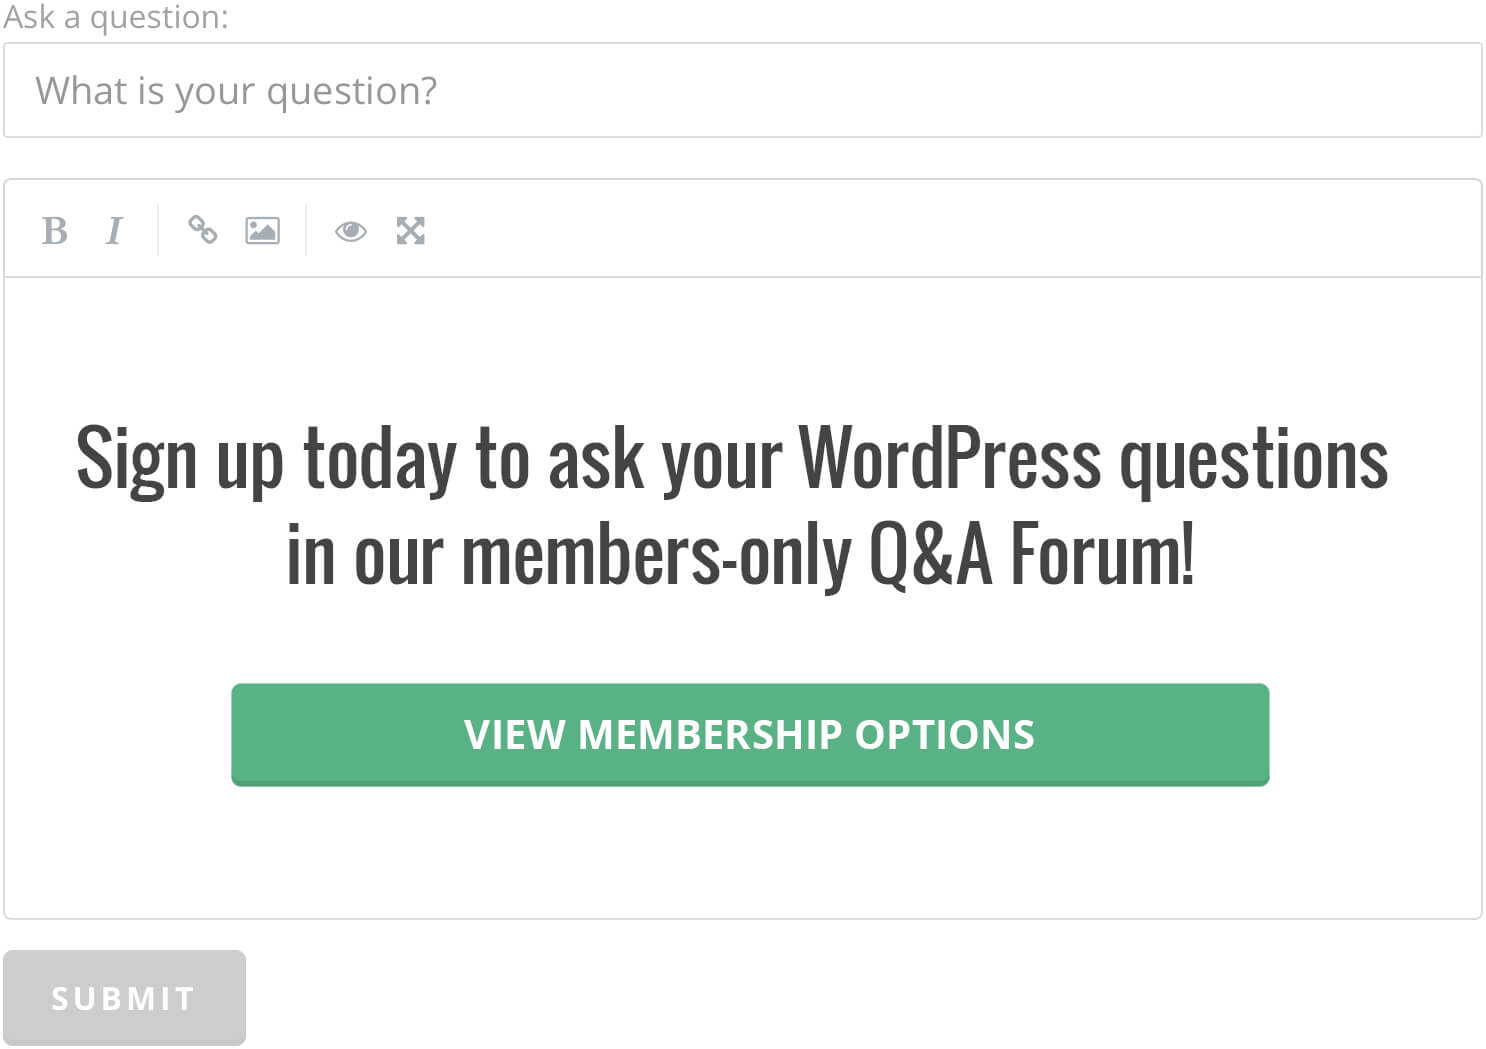 Sign up today to ask your WordPress questions in our members-only Q&A Forum!